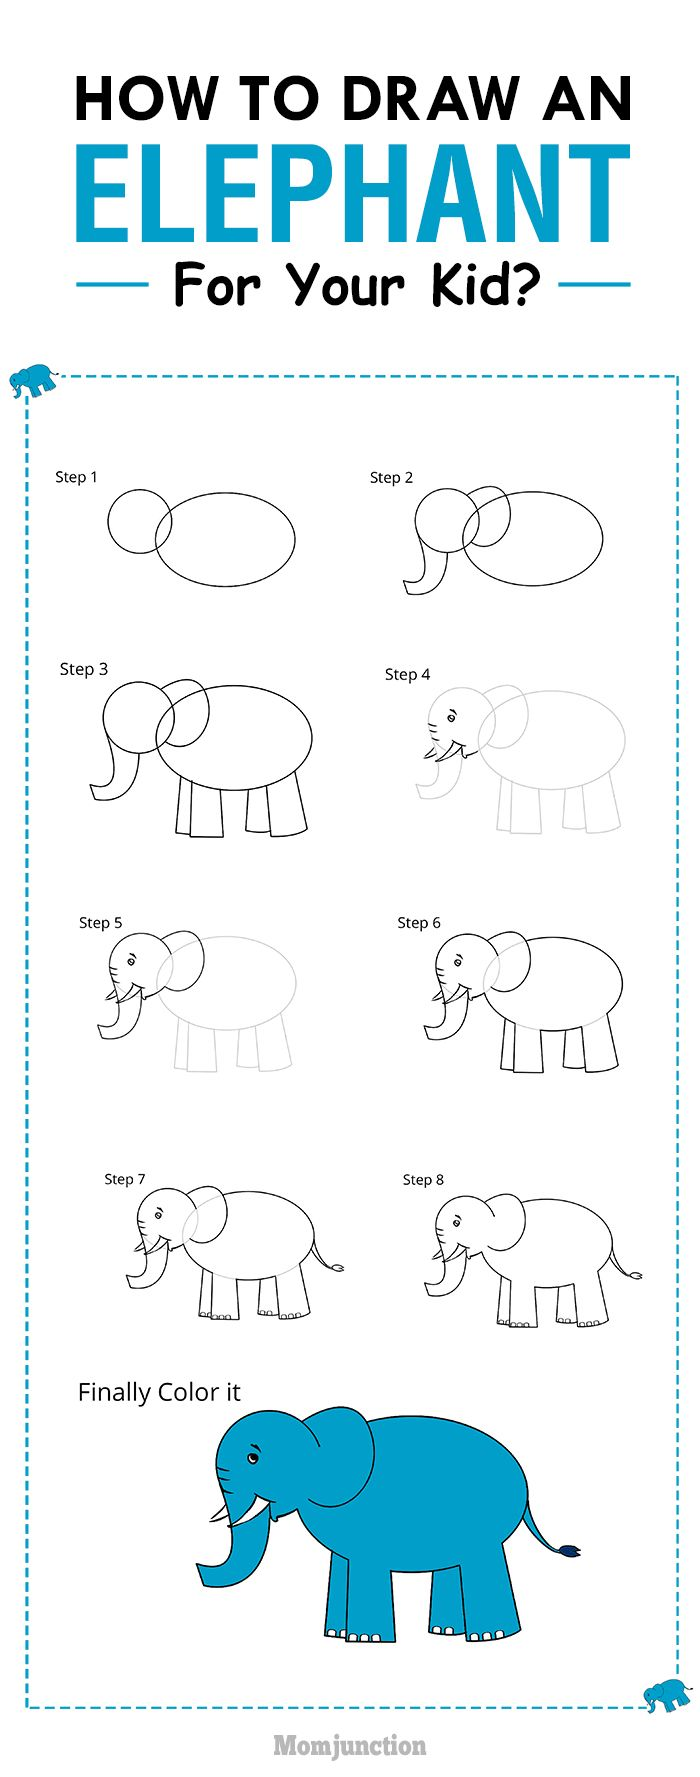 How To Draw An Elephant For Your Kid?